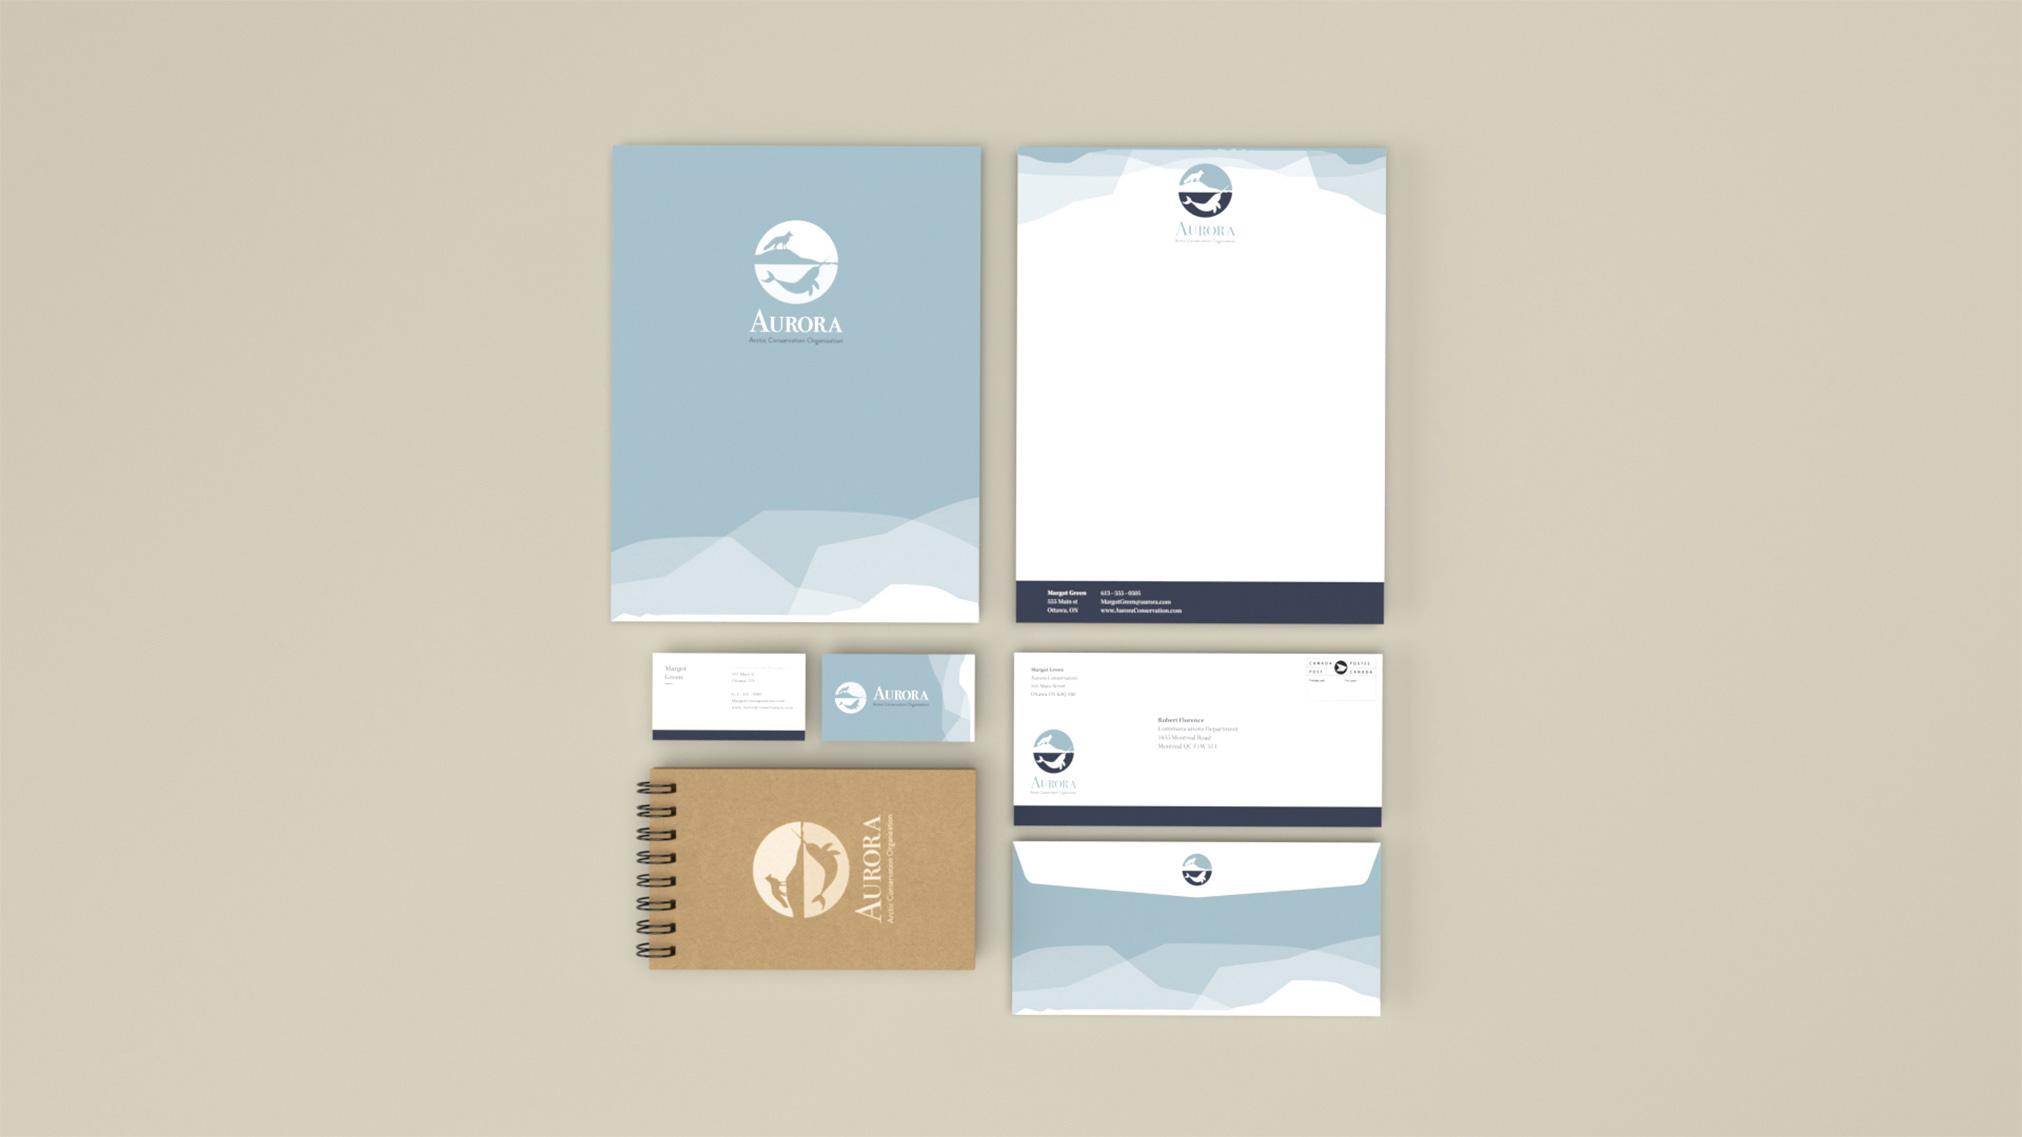 For this project, I did a full branding overhaul. I created a new logo and an animated version of it, a full stationery package, and wireframes for their website.